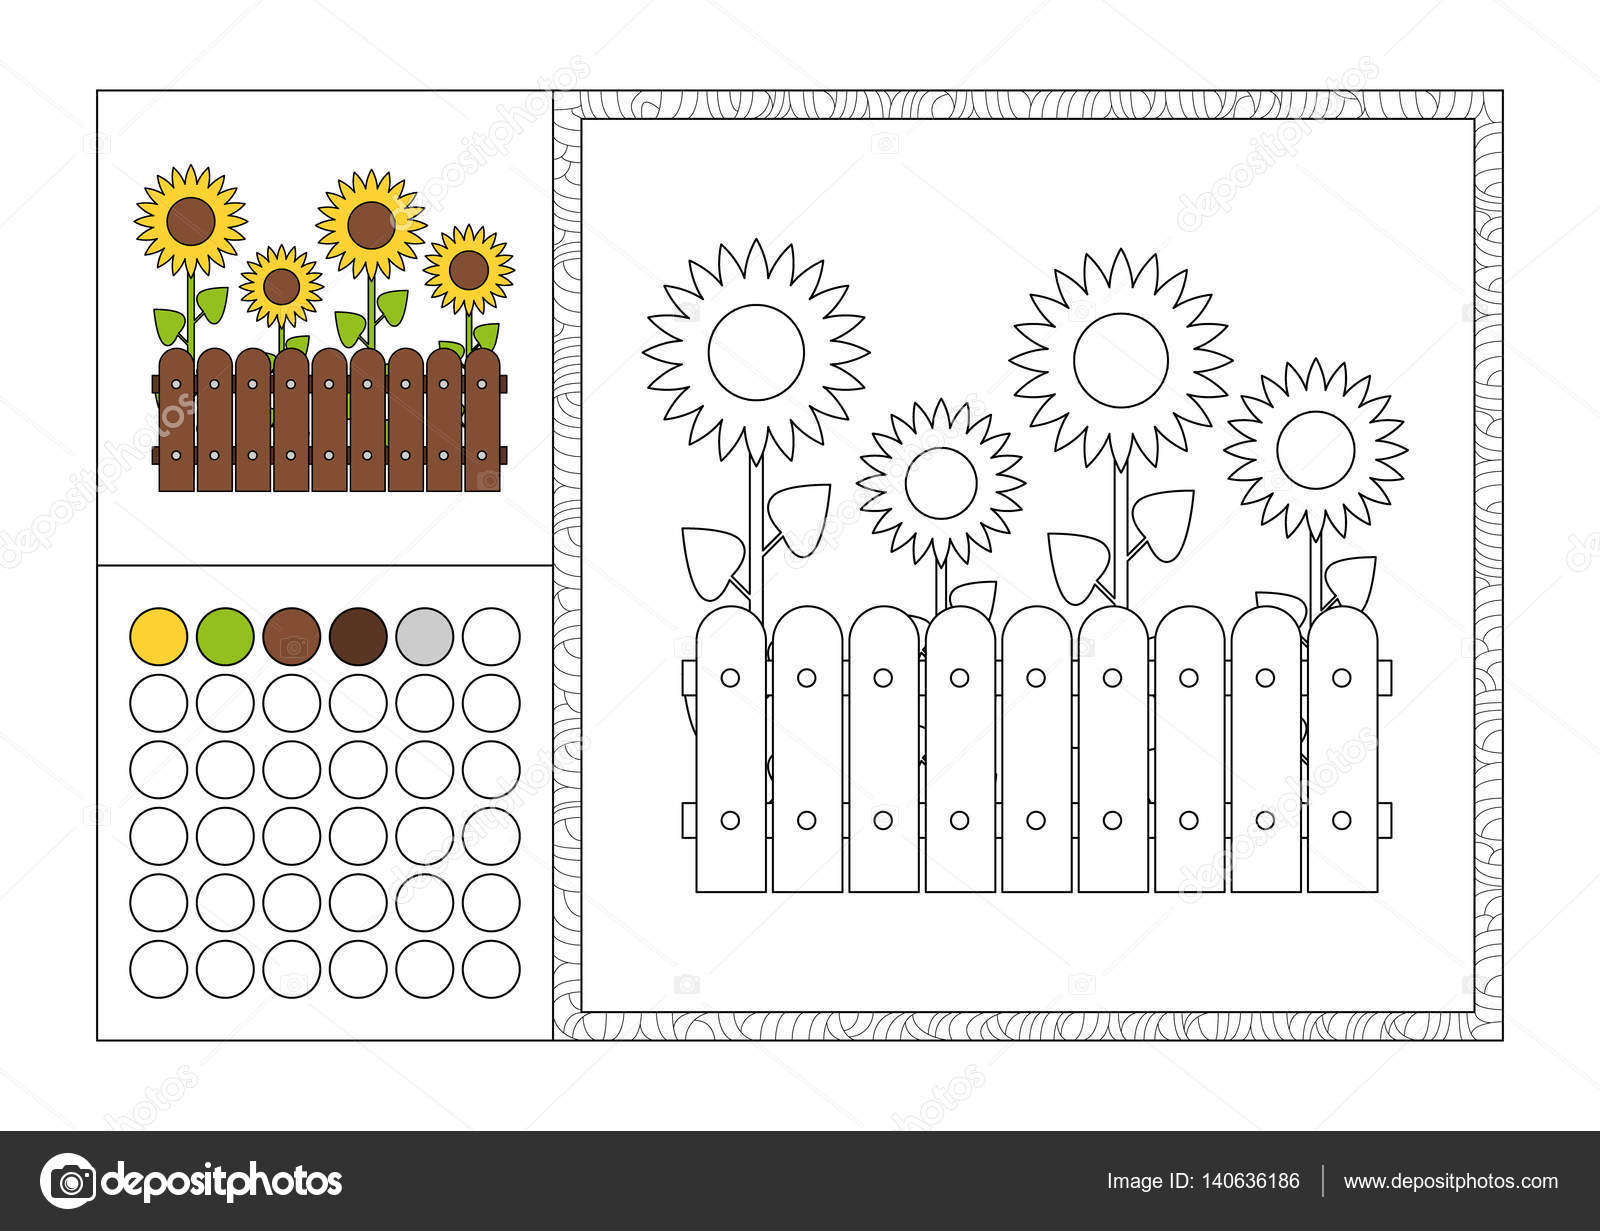 adult coloring book page with colored template, decorative frame and on garden stairs designs, garden structure designs, entrance garden designs, garden exterior designs, bamboo garden designs, garden border designs, garden plant designs, garden design software, garden fireplace designs, garden home designs, garden sidewalk designs, garden barn designs, garden frame designs, garden landscape designs, garden hedge plant, front garden designs, garden fences to keep animals out, garden pergola designs, garden vegetable cream cheese recipe, rock garden designs,